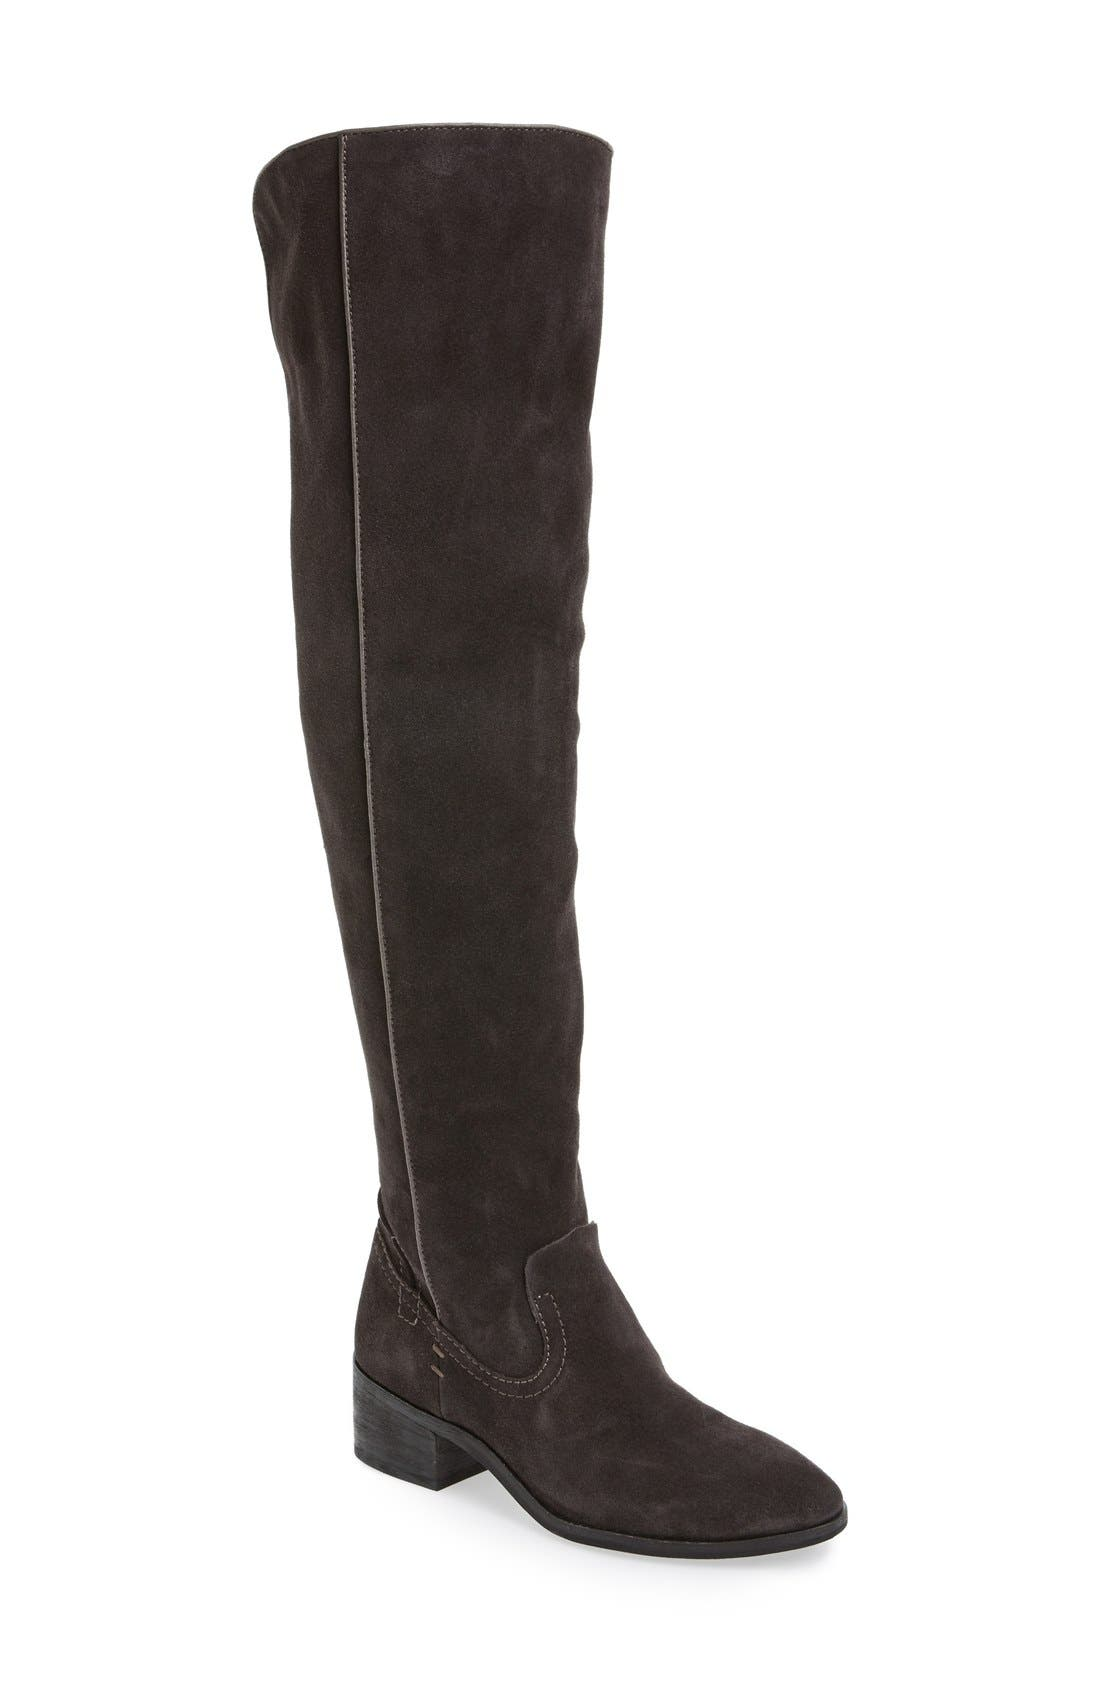 Alternate Image 1 Selected - Dolce Vita 'Kitt' Over the Knee Boot (Women)